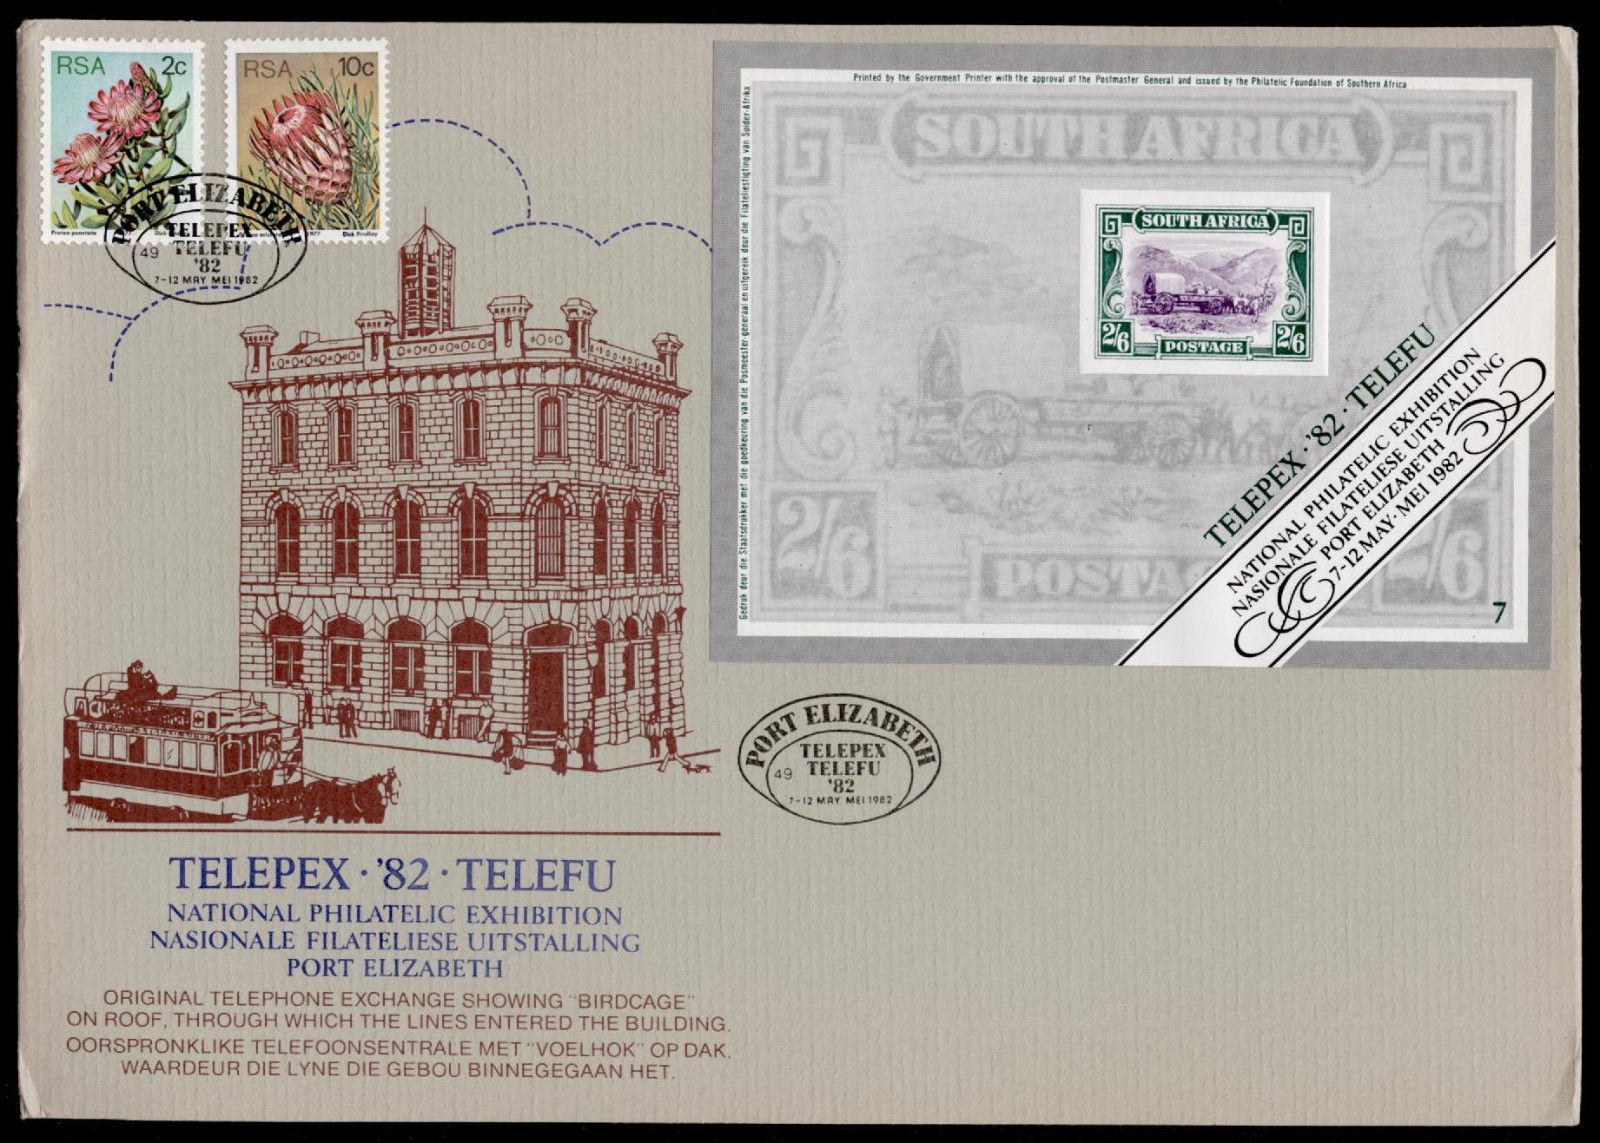 South Africa TELEPEX '82 PHILATELIC EXHIBITION COVER / HipStamp